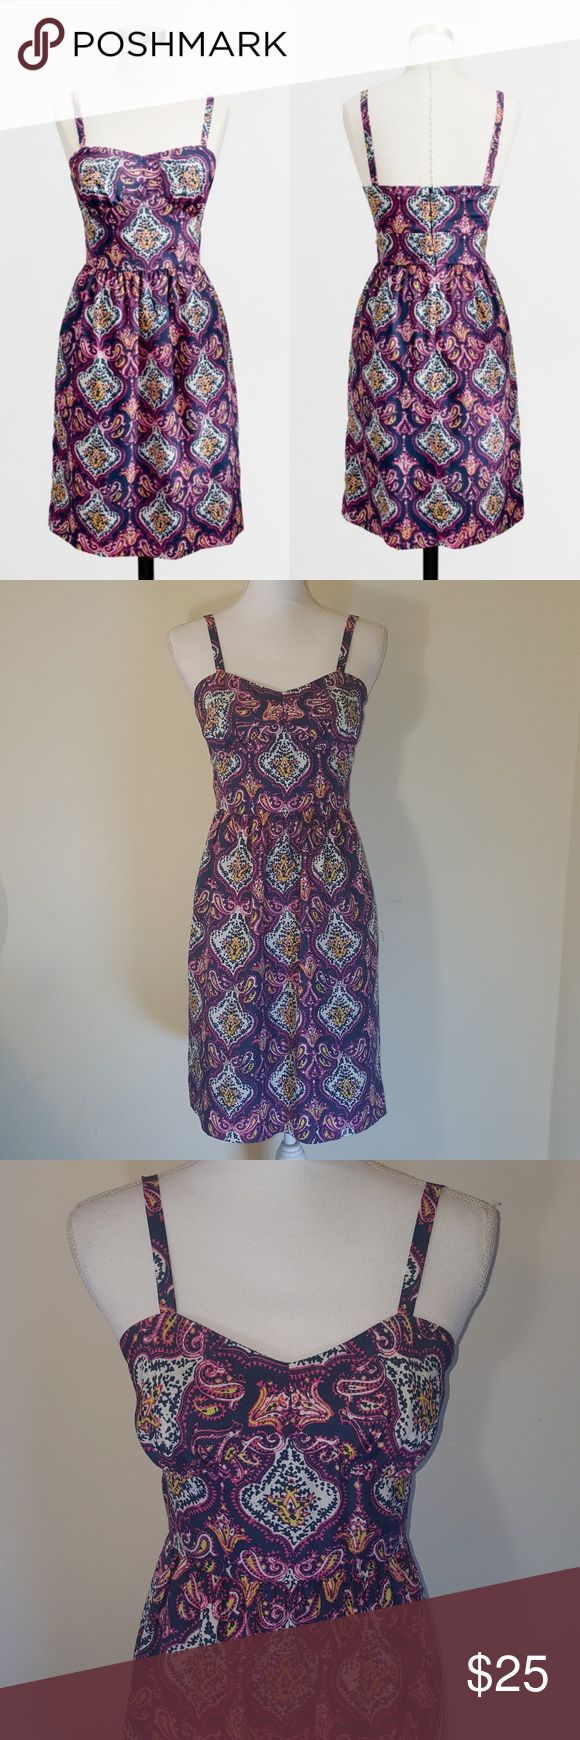 "J. Crew Medallion Tank Dress, NWOT Perfect, vibrant summer dress from J. Crew Factory. Details from the website, ""Poly. Falls above knee. On-seam pockets. Lined. Back zip. Hand wash. Import. Item?81383."" Sold out online. New without tags. J. Crew Dresses"